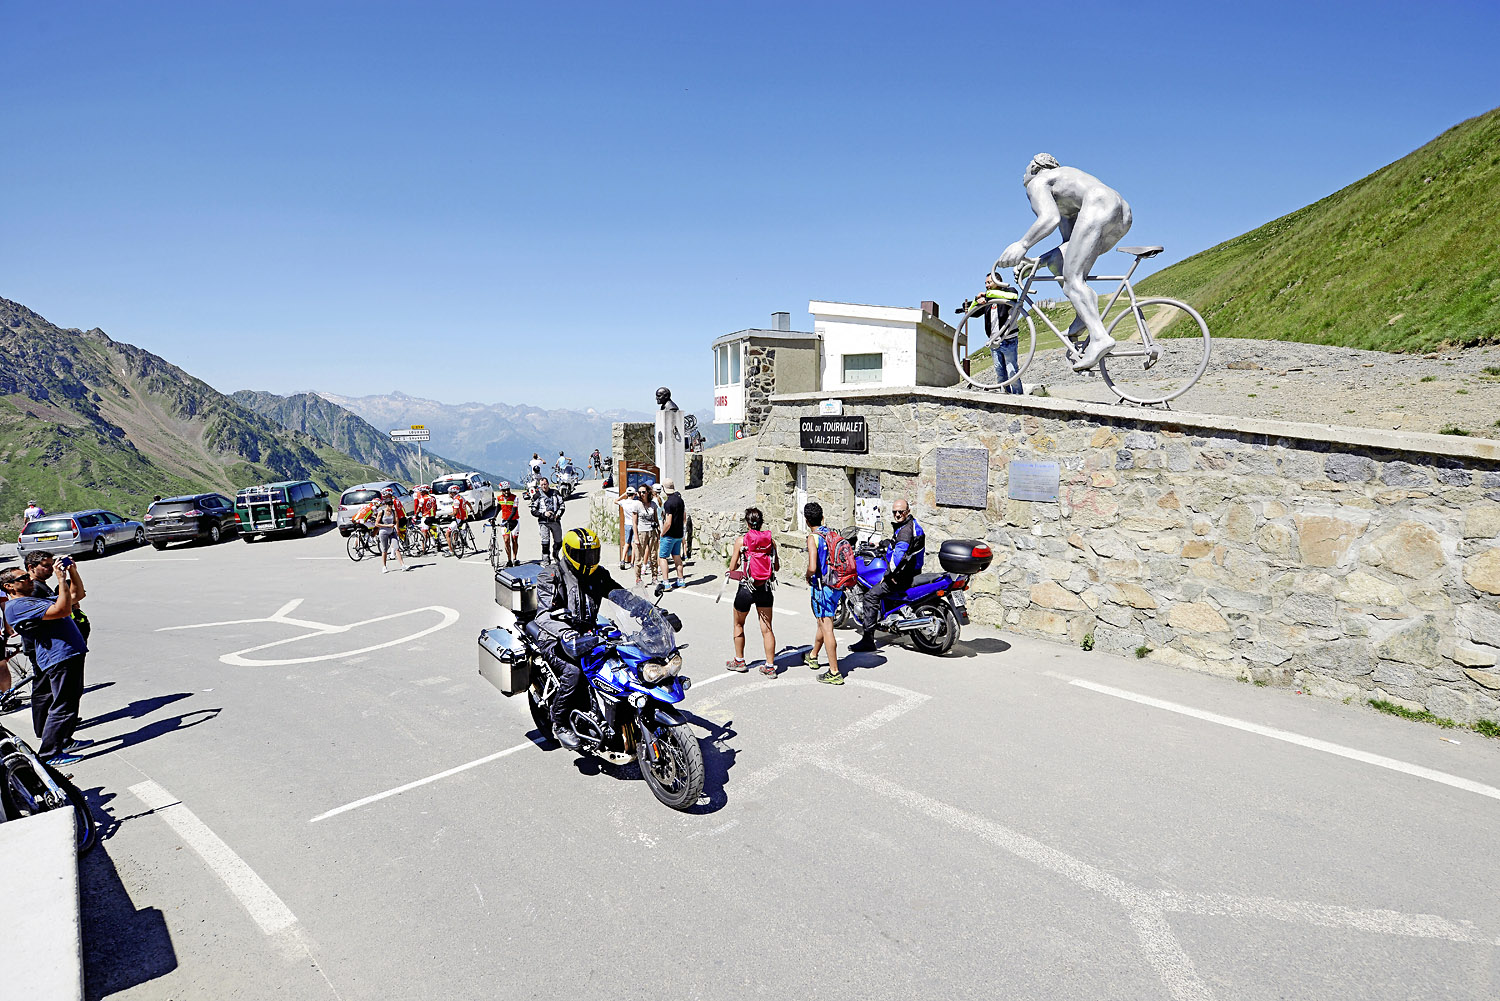 It's always busy at the top of Col du Tourmalet